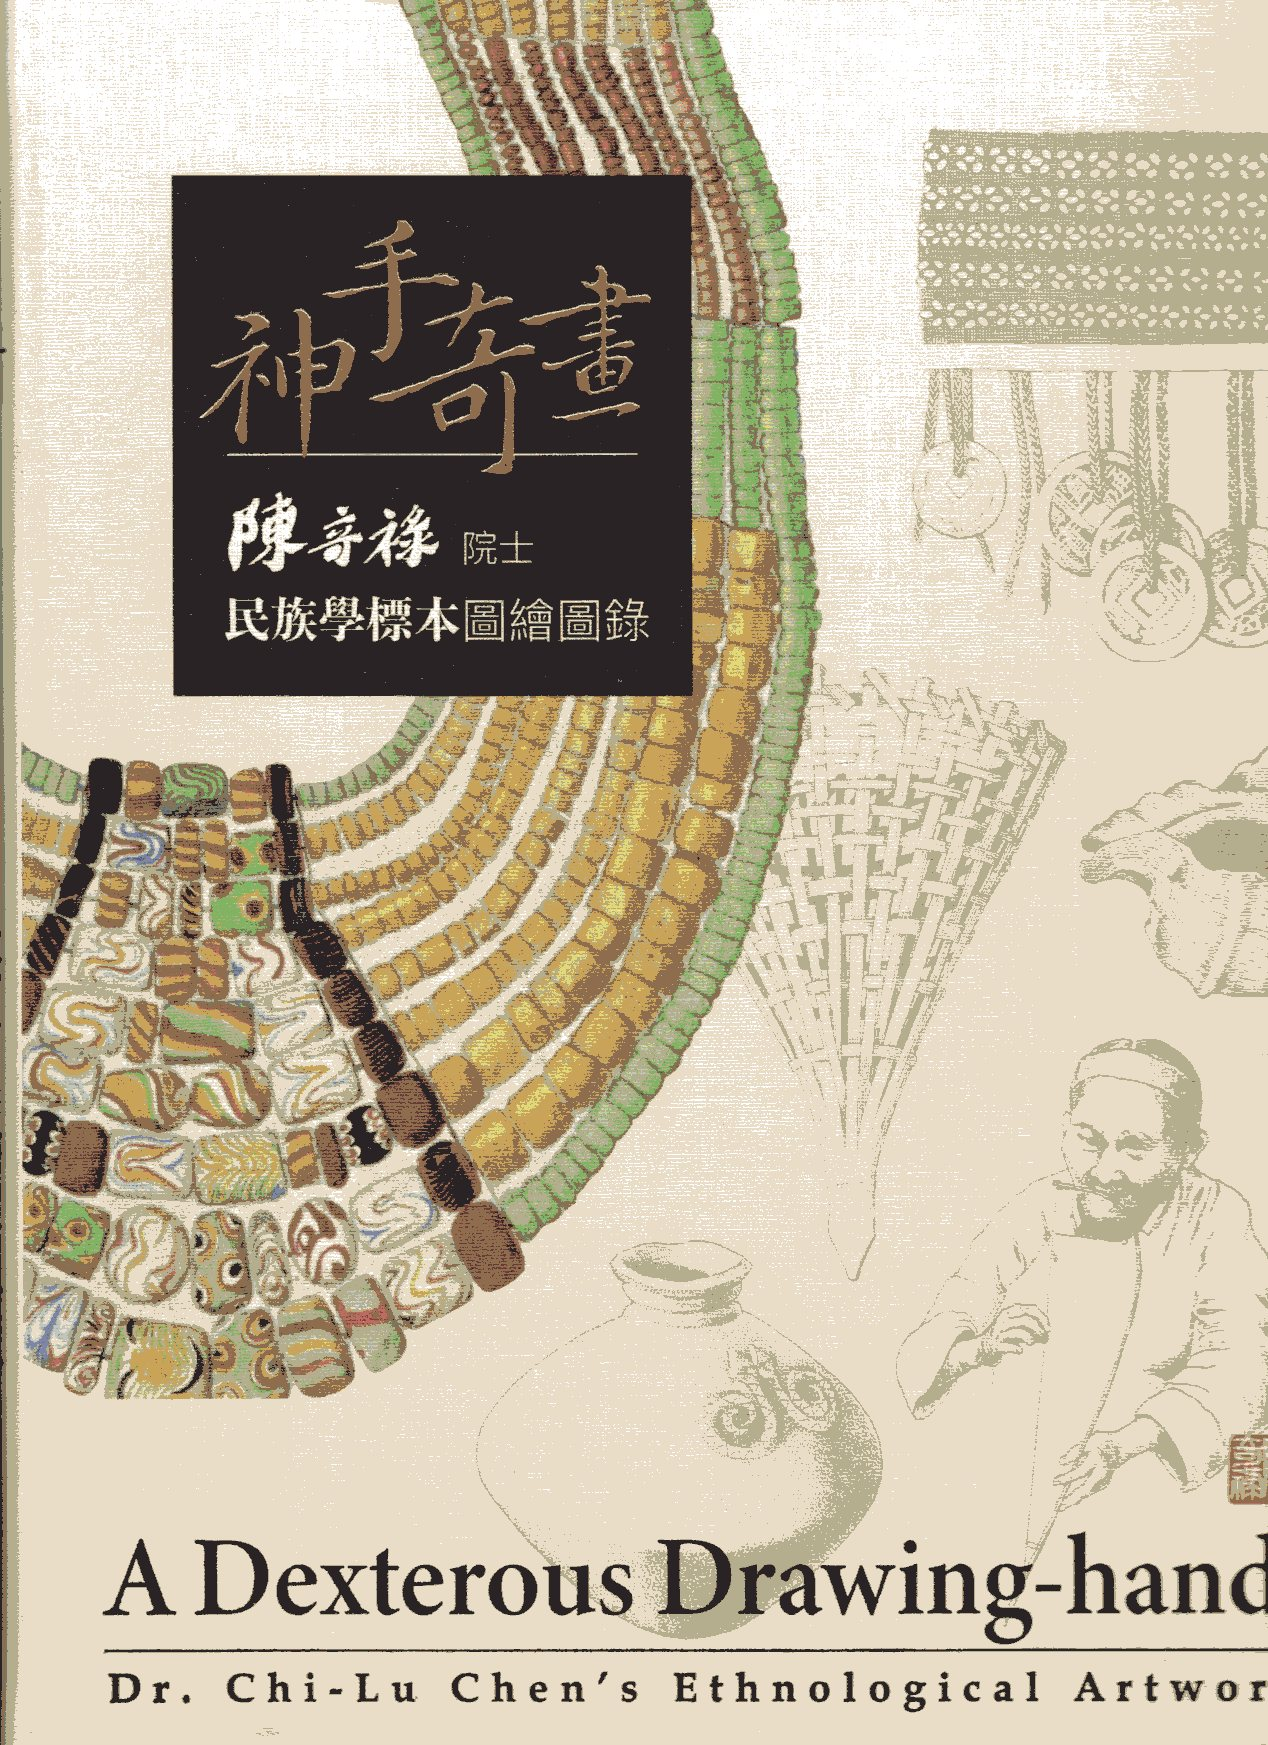 A Dexterous Drawing-hand: Dr. Chi-Lu Chen's Ethnological Artwork